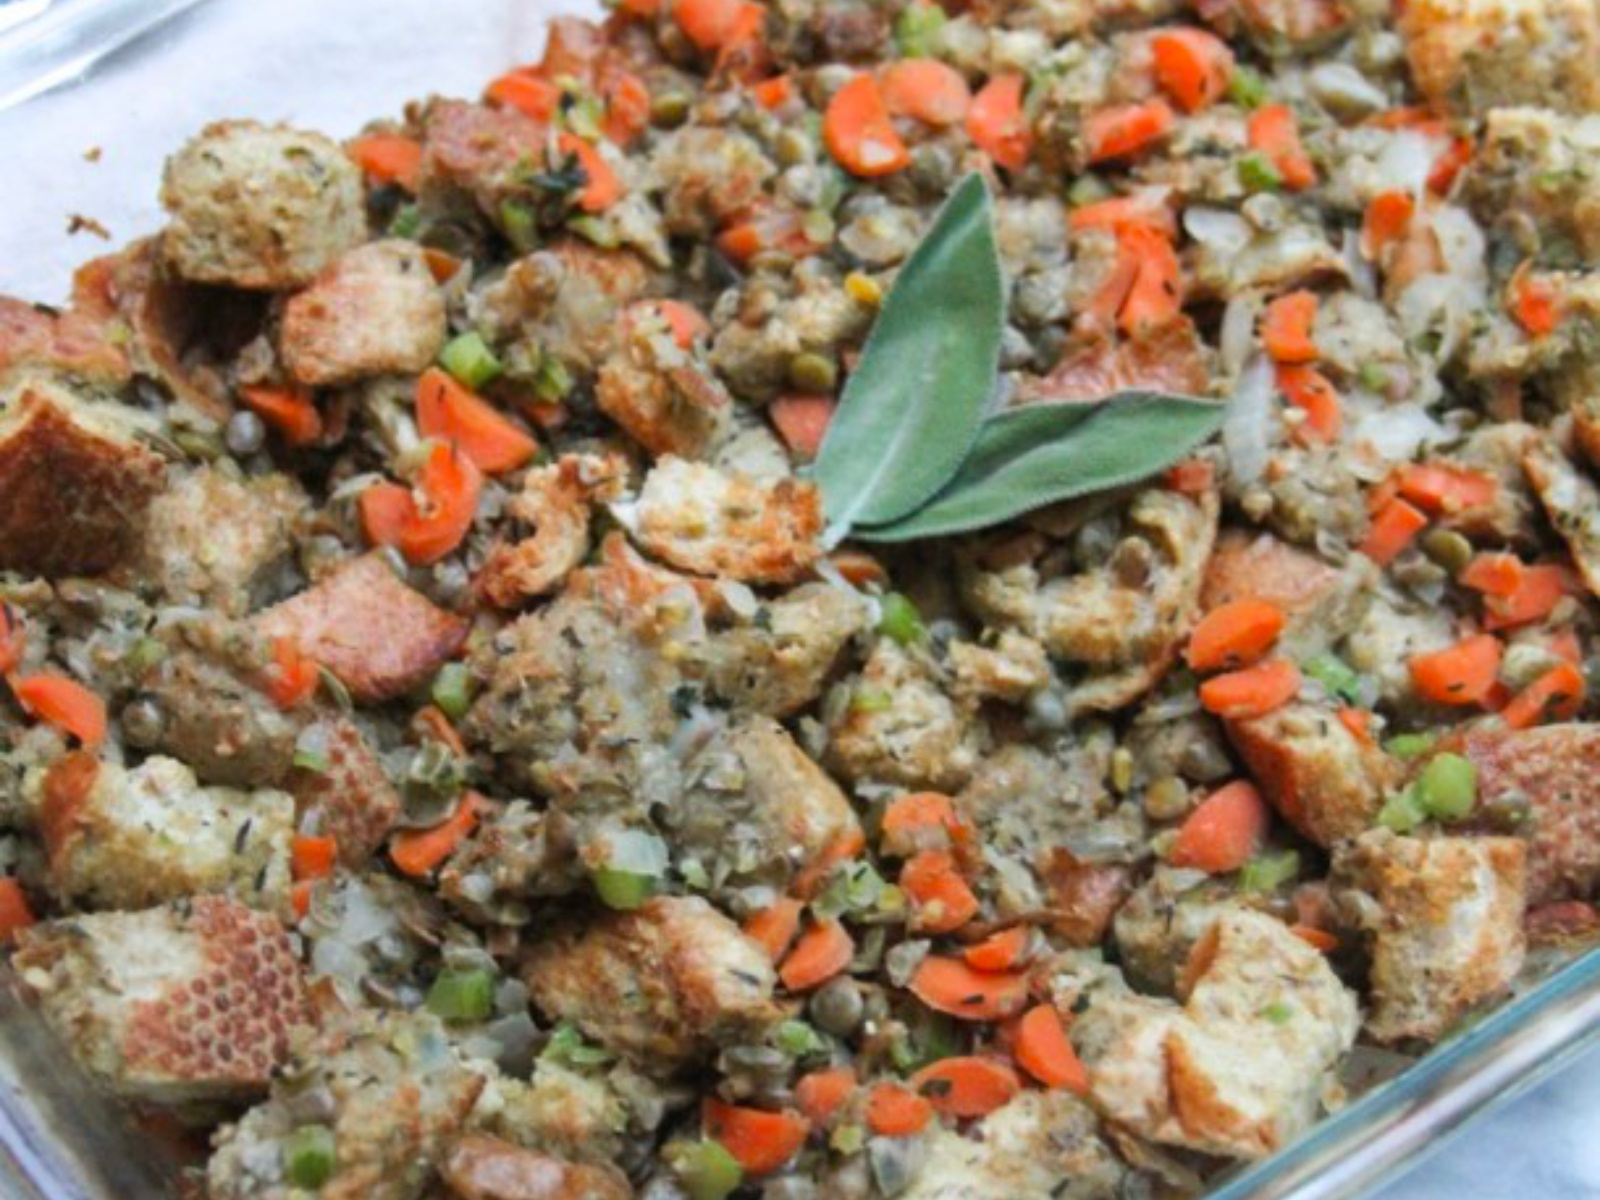 Herb and Lentil Stuffing